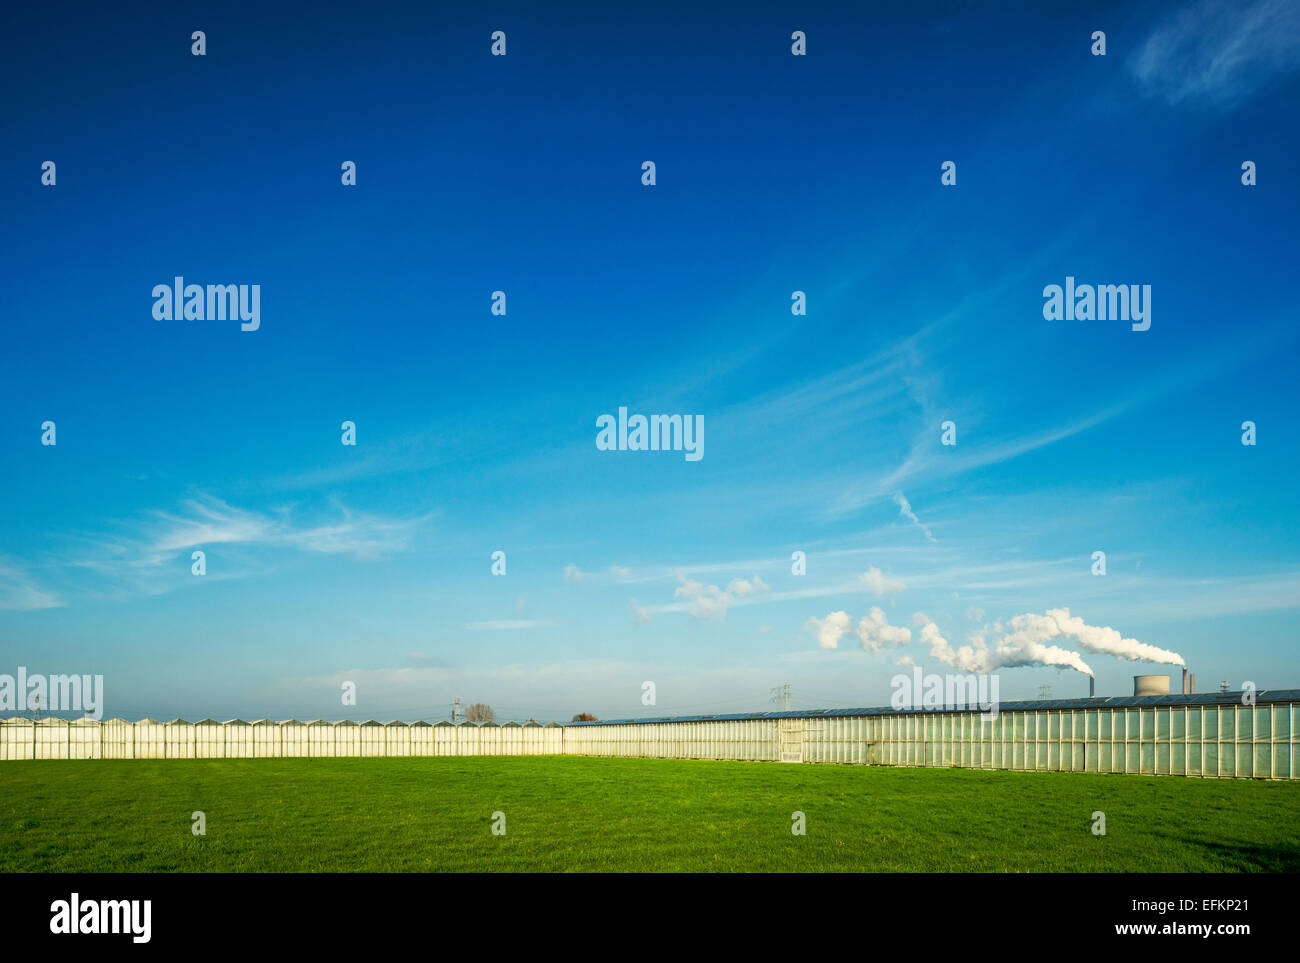 Rows of greenhouses in front of distant power station - Stock Image